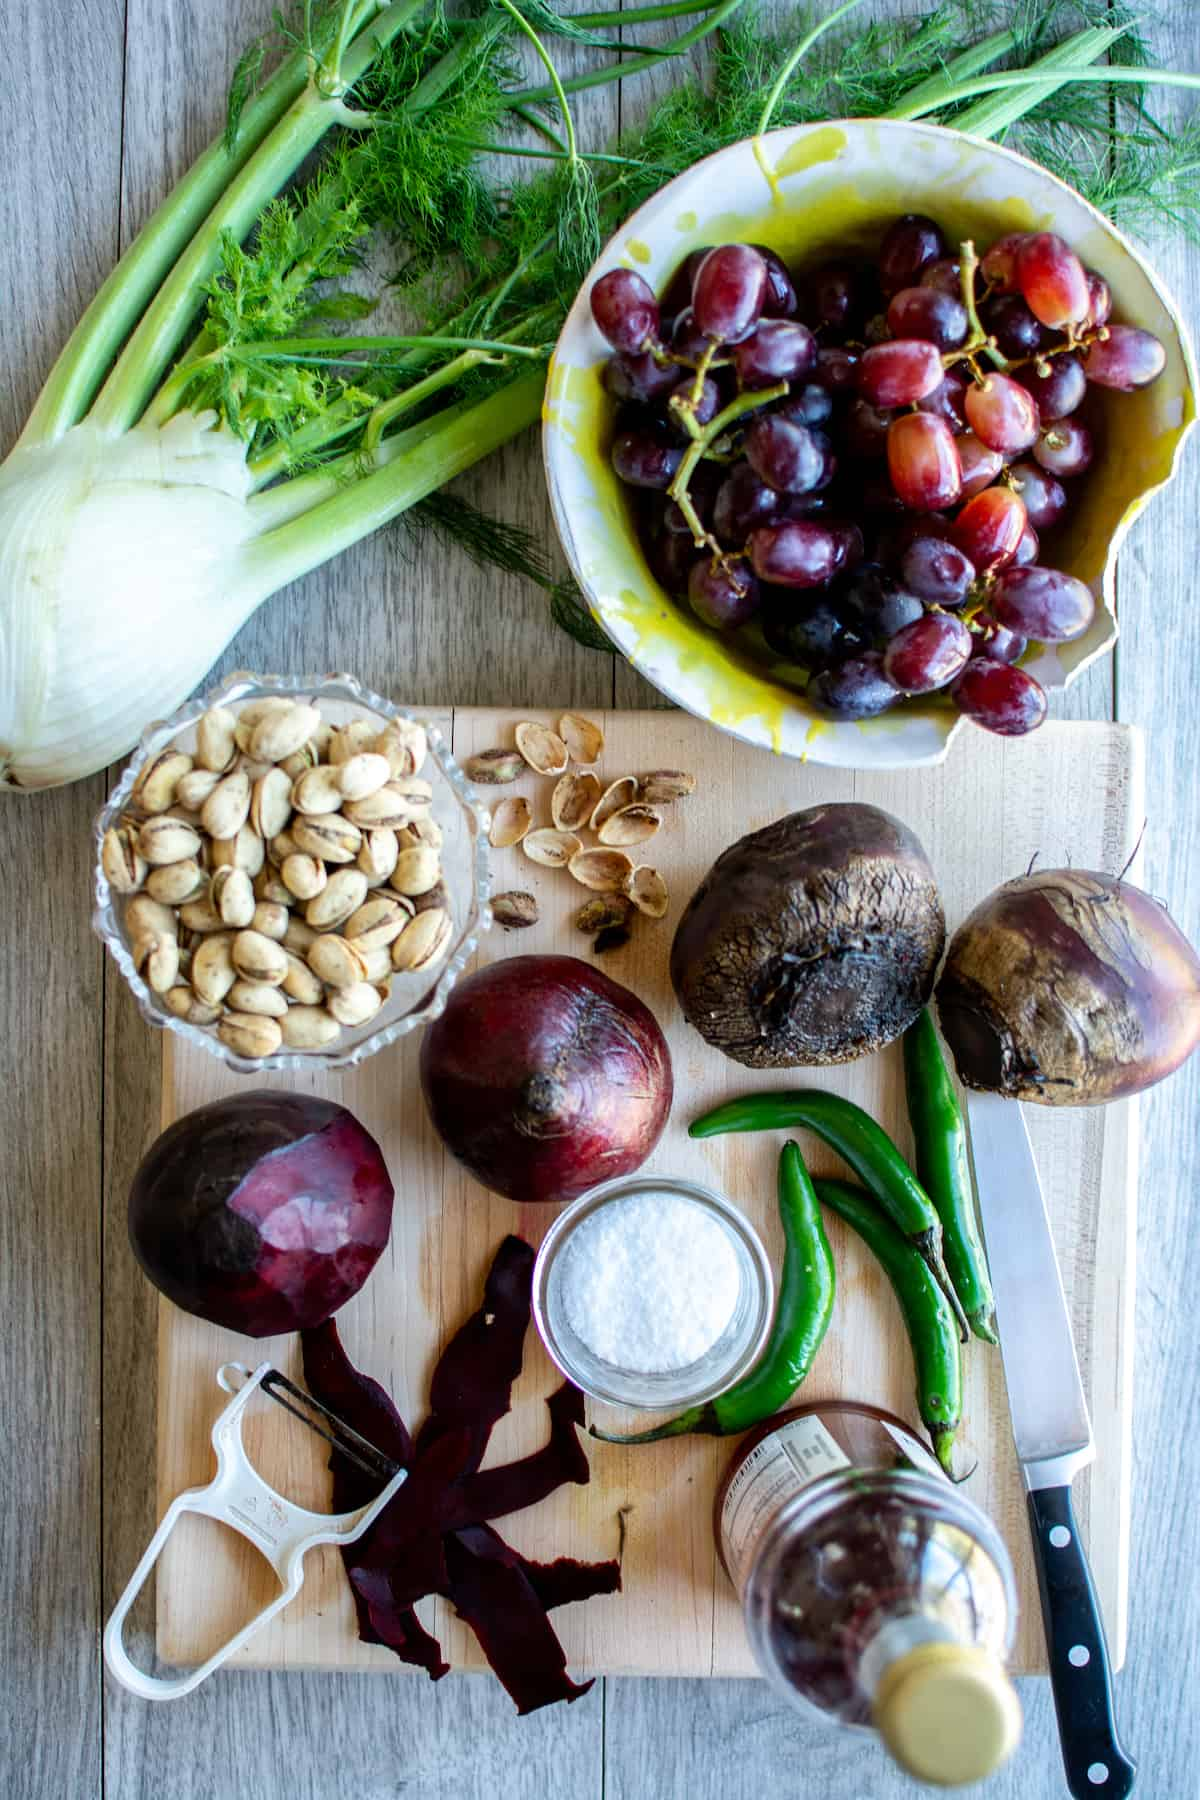 All the ingredients to make this grape-roasted beet salad including, fresh fennel, red grapes, pistachios, red beets, and serrano peppers.